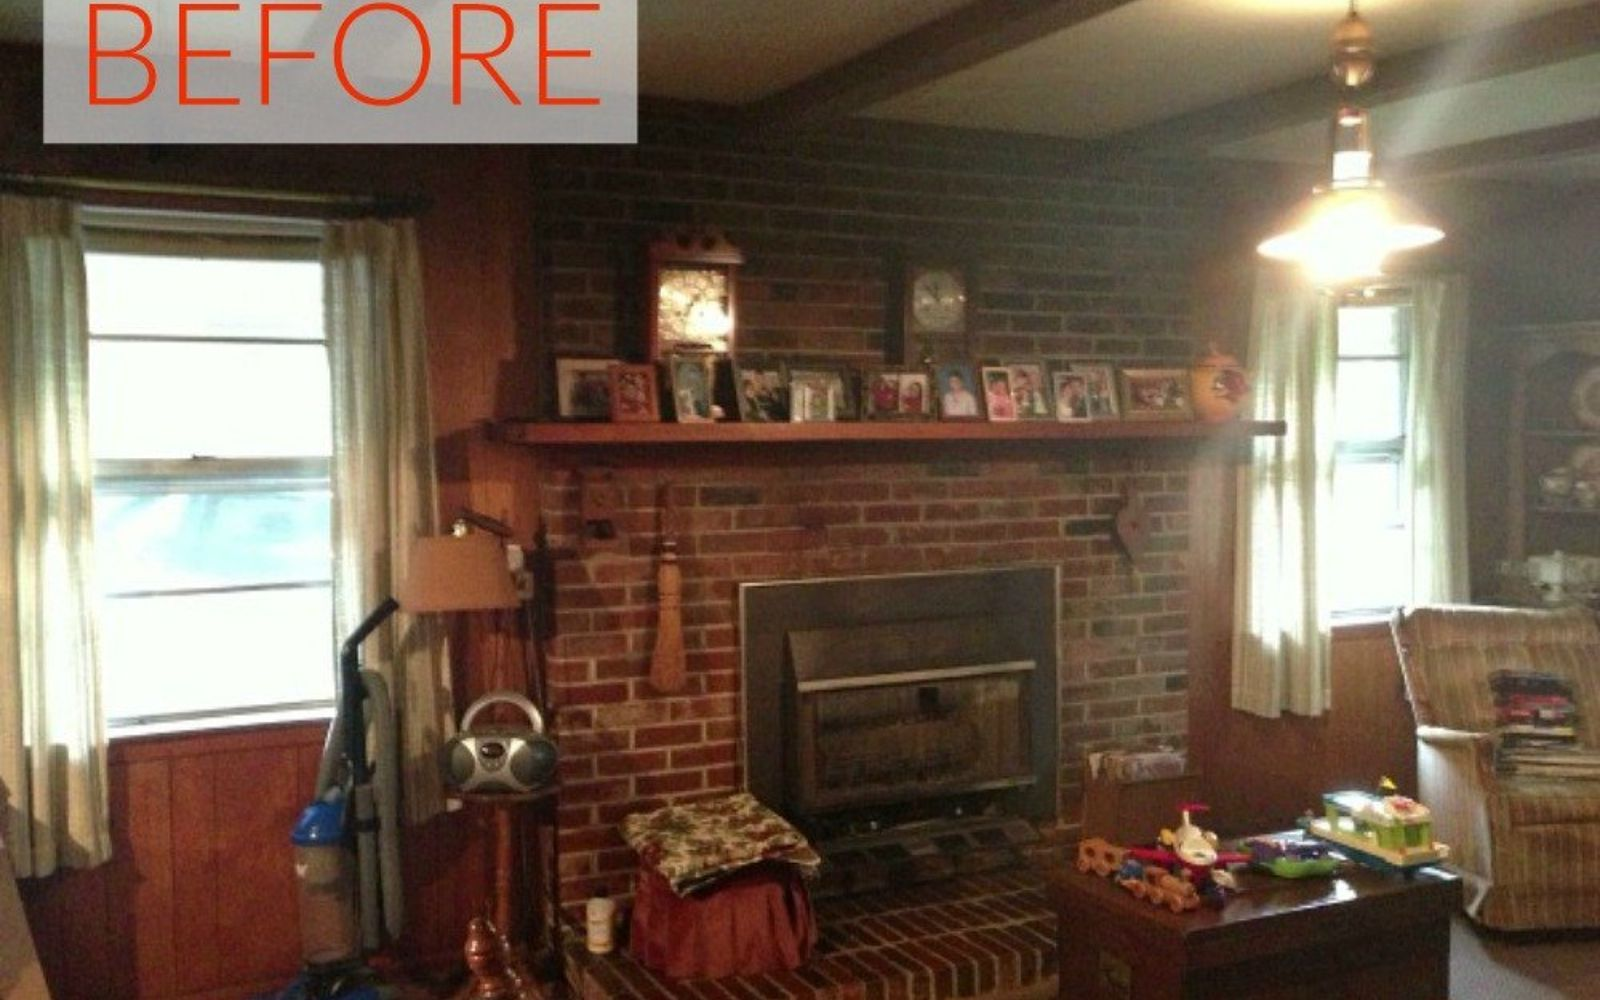 s 10 gorgeous ways to transform a brick fireplace without replacing it, concrete masonry, fireplaces mantels, The problem It s old fashioned and dark